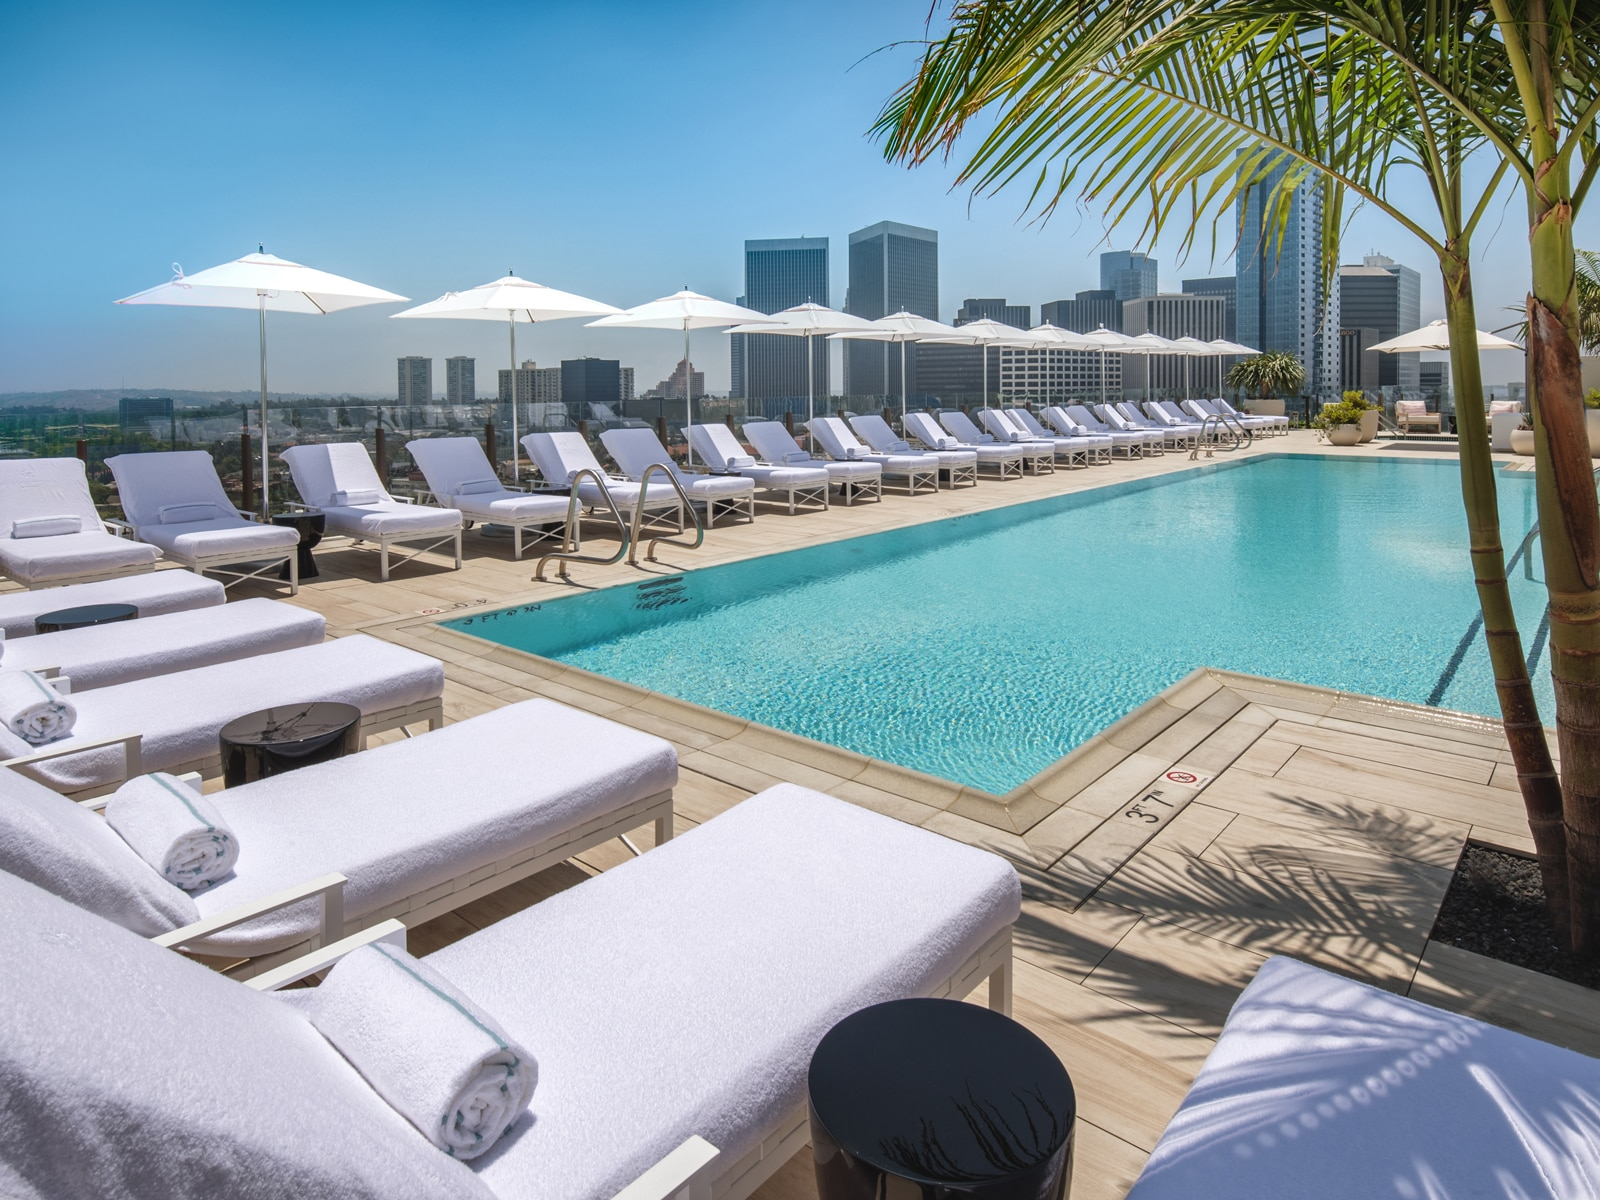 Los Angeles Hotels Hotels Refurbished